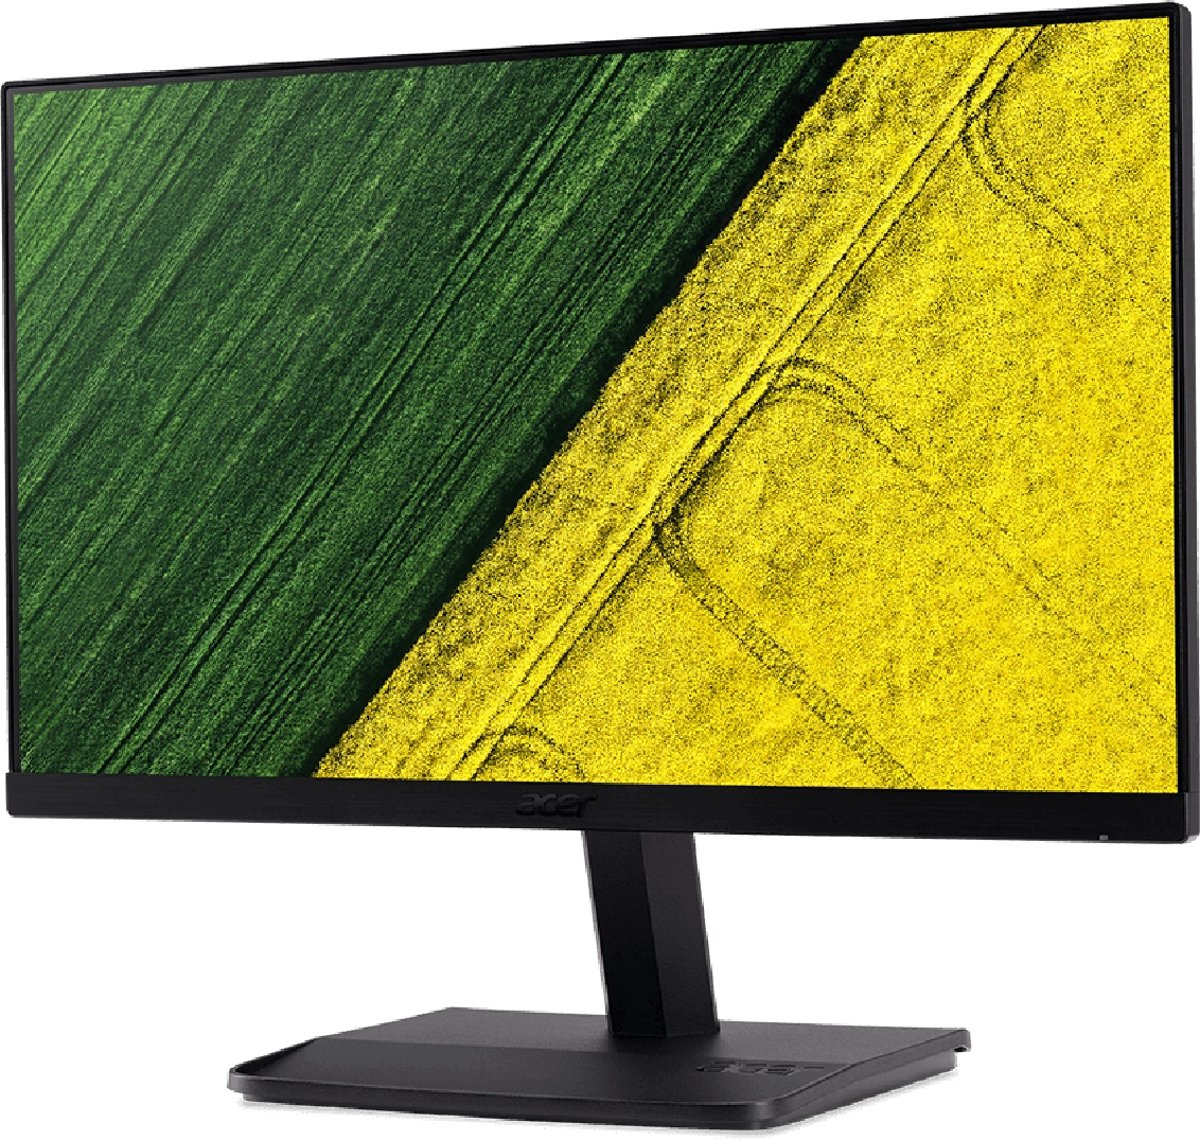 Acer ET271 - Full HD IPS Monitor